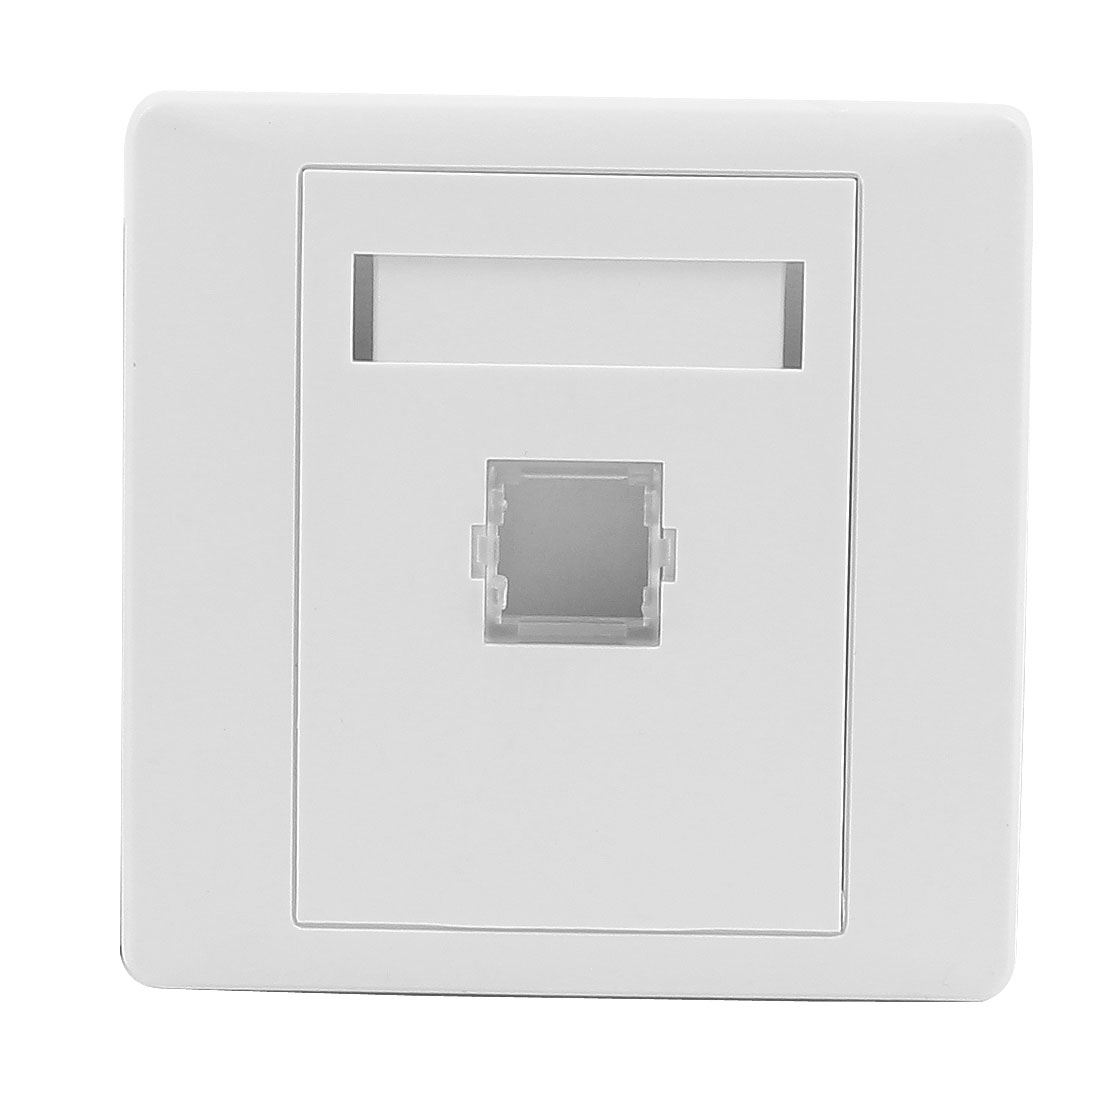 LC Fiber Optical Cord Connector Mount Sockets Wall Plate Panel